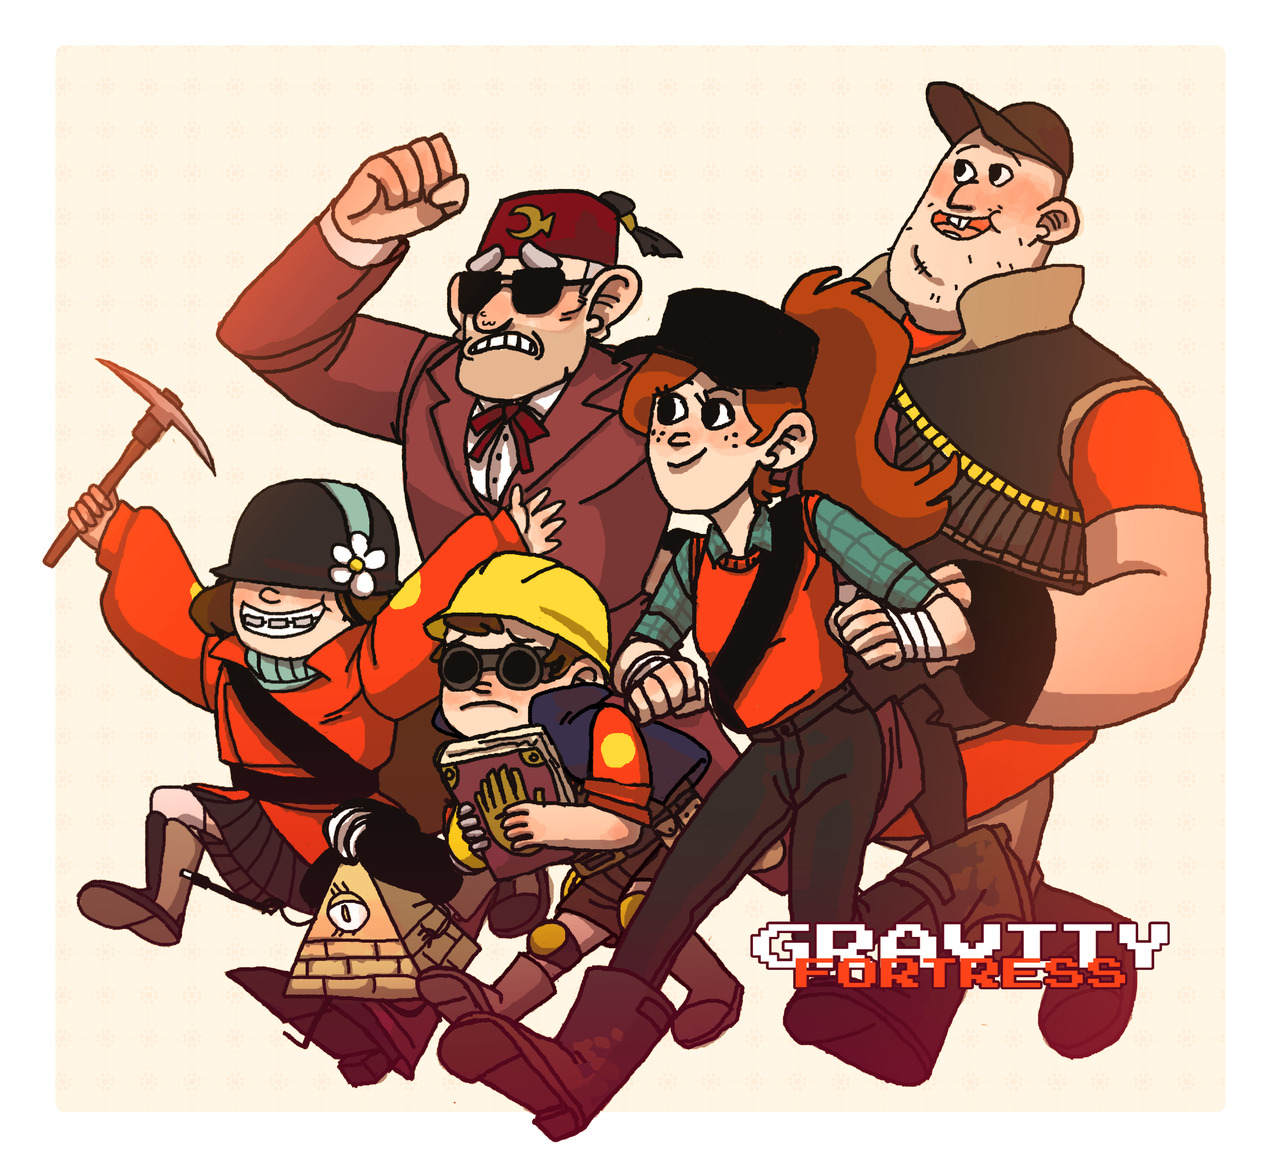 Gravity Falls Trust No One Wallpaper Http Gatherersgarden Tumblr Com Post 28965873585 Do You